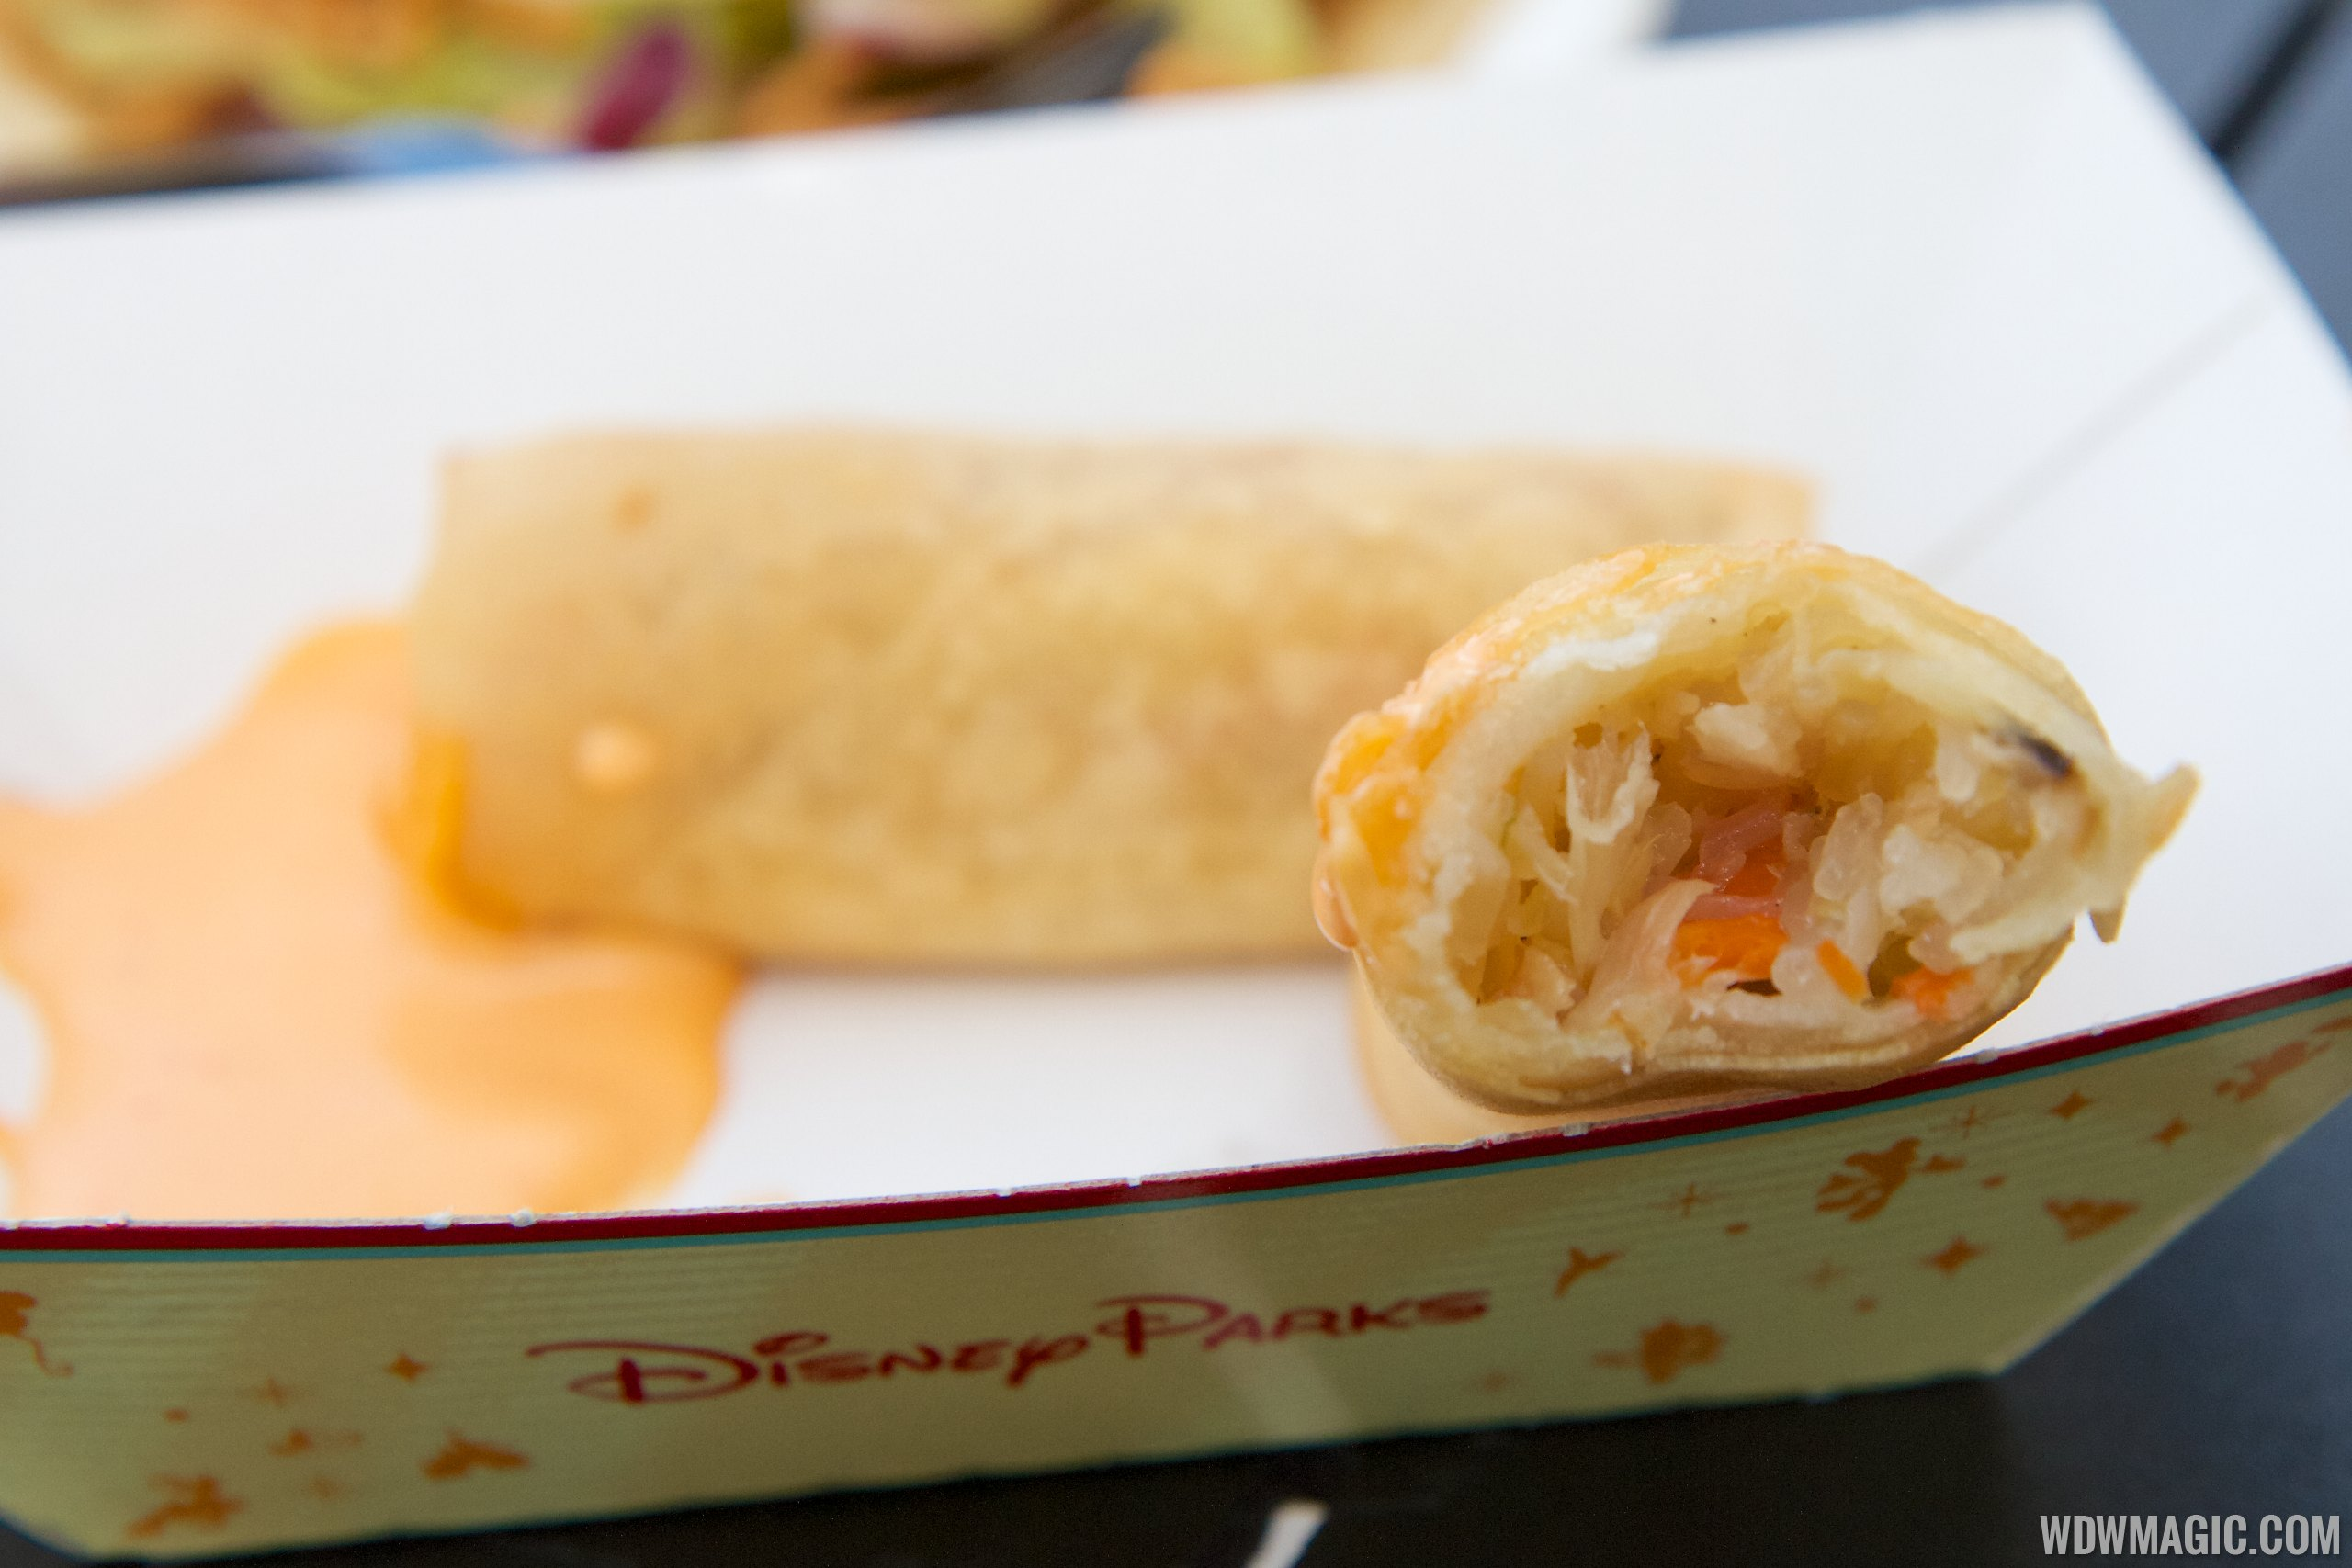 2014 Epcot Flower and Garden Festival Outdoor Kitchen kiosk - Lotus House China - Vegetable Spring Rolls $4.25